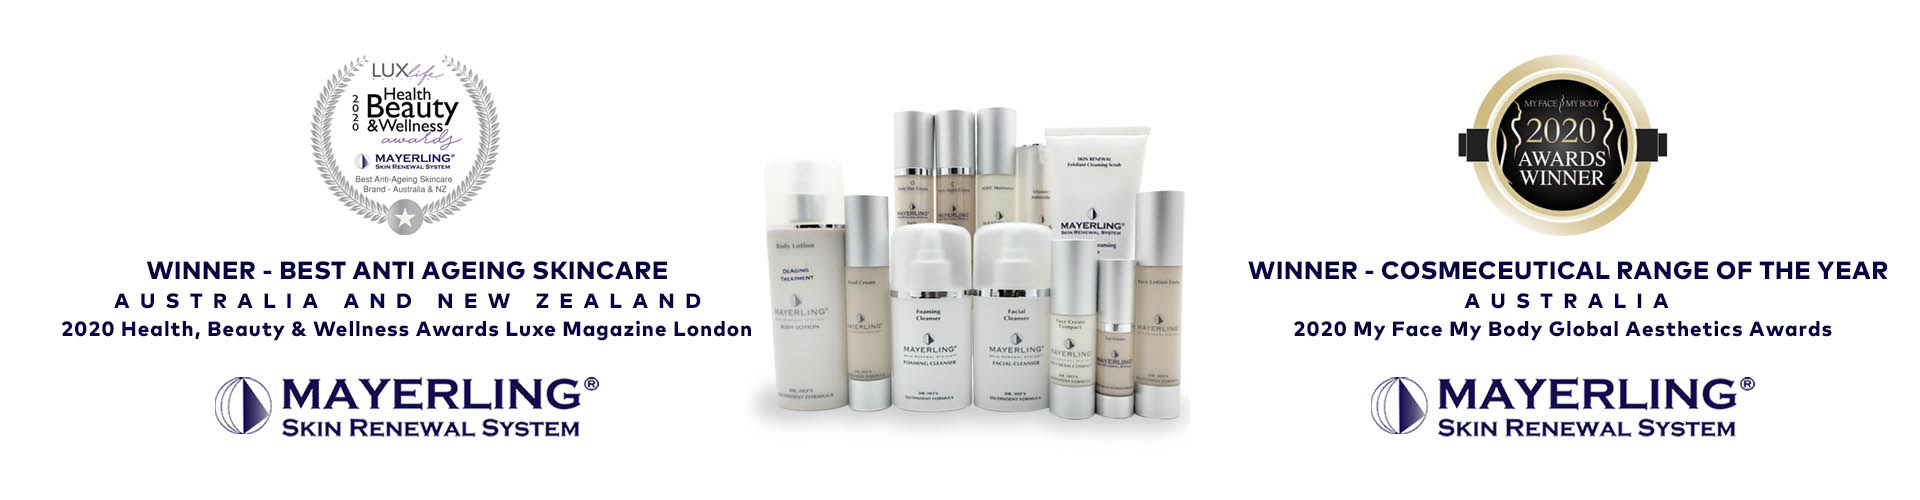 Best Anti Ageing Skincare Australia - Mayerling Skincare